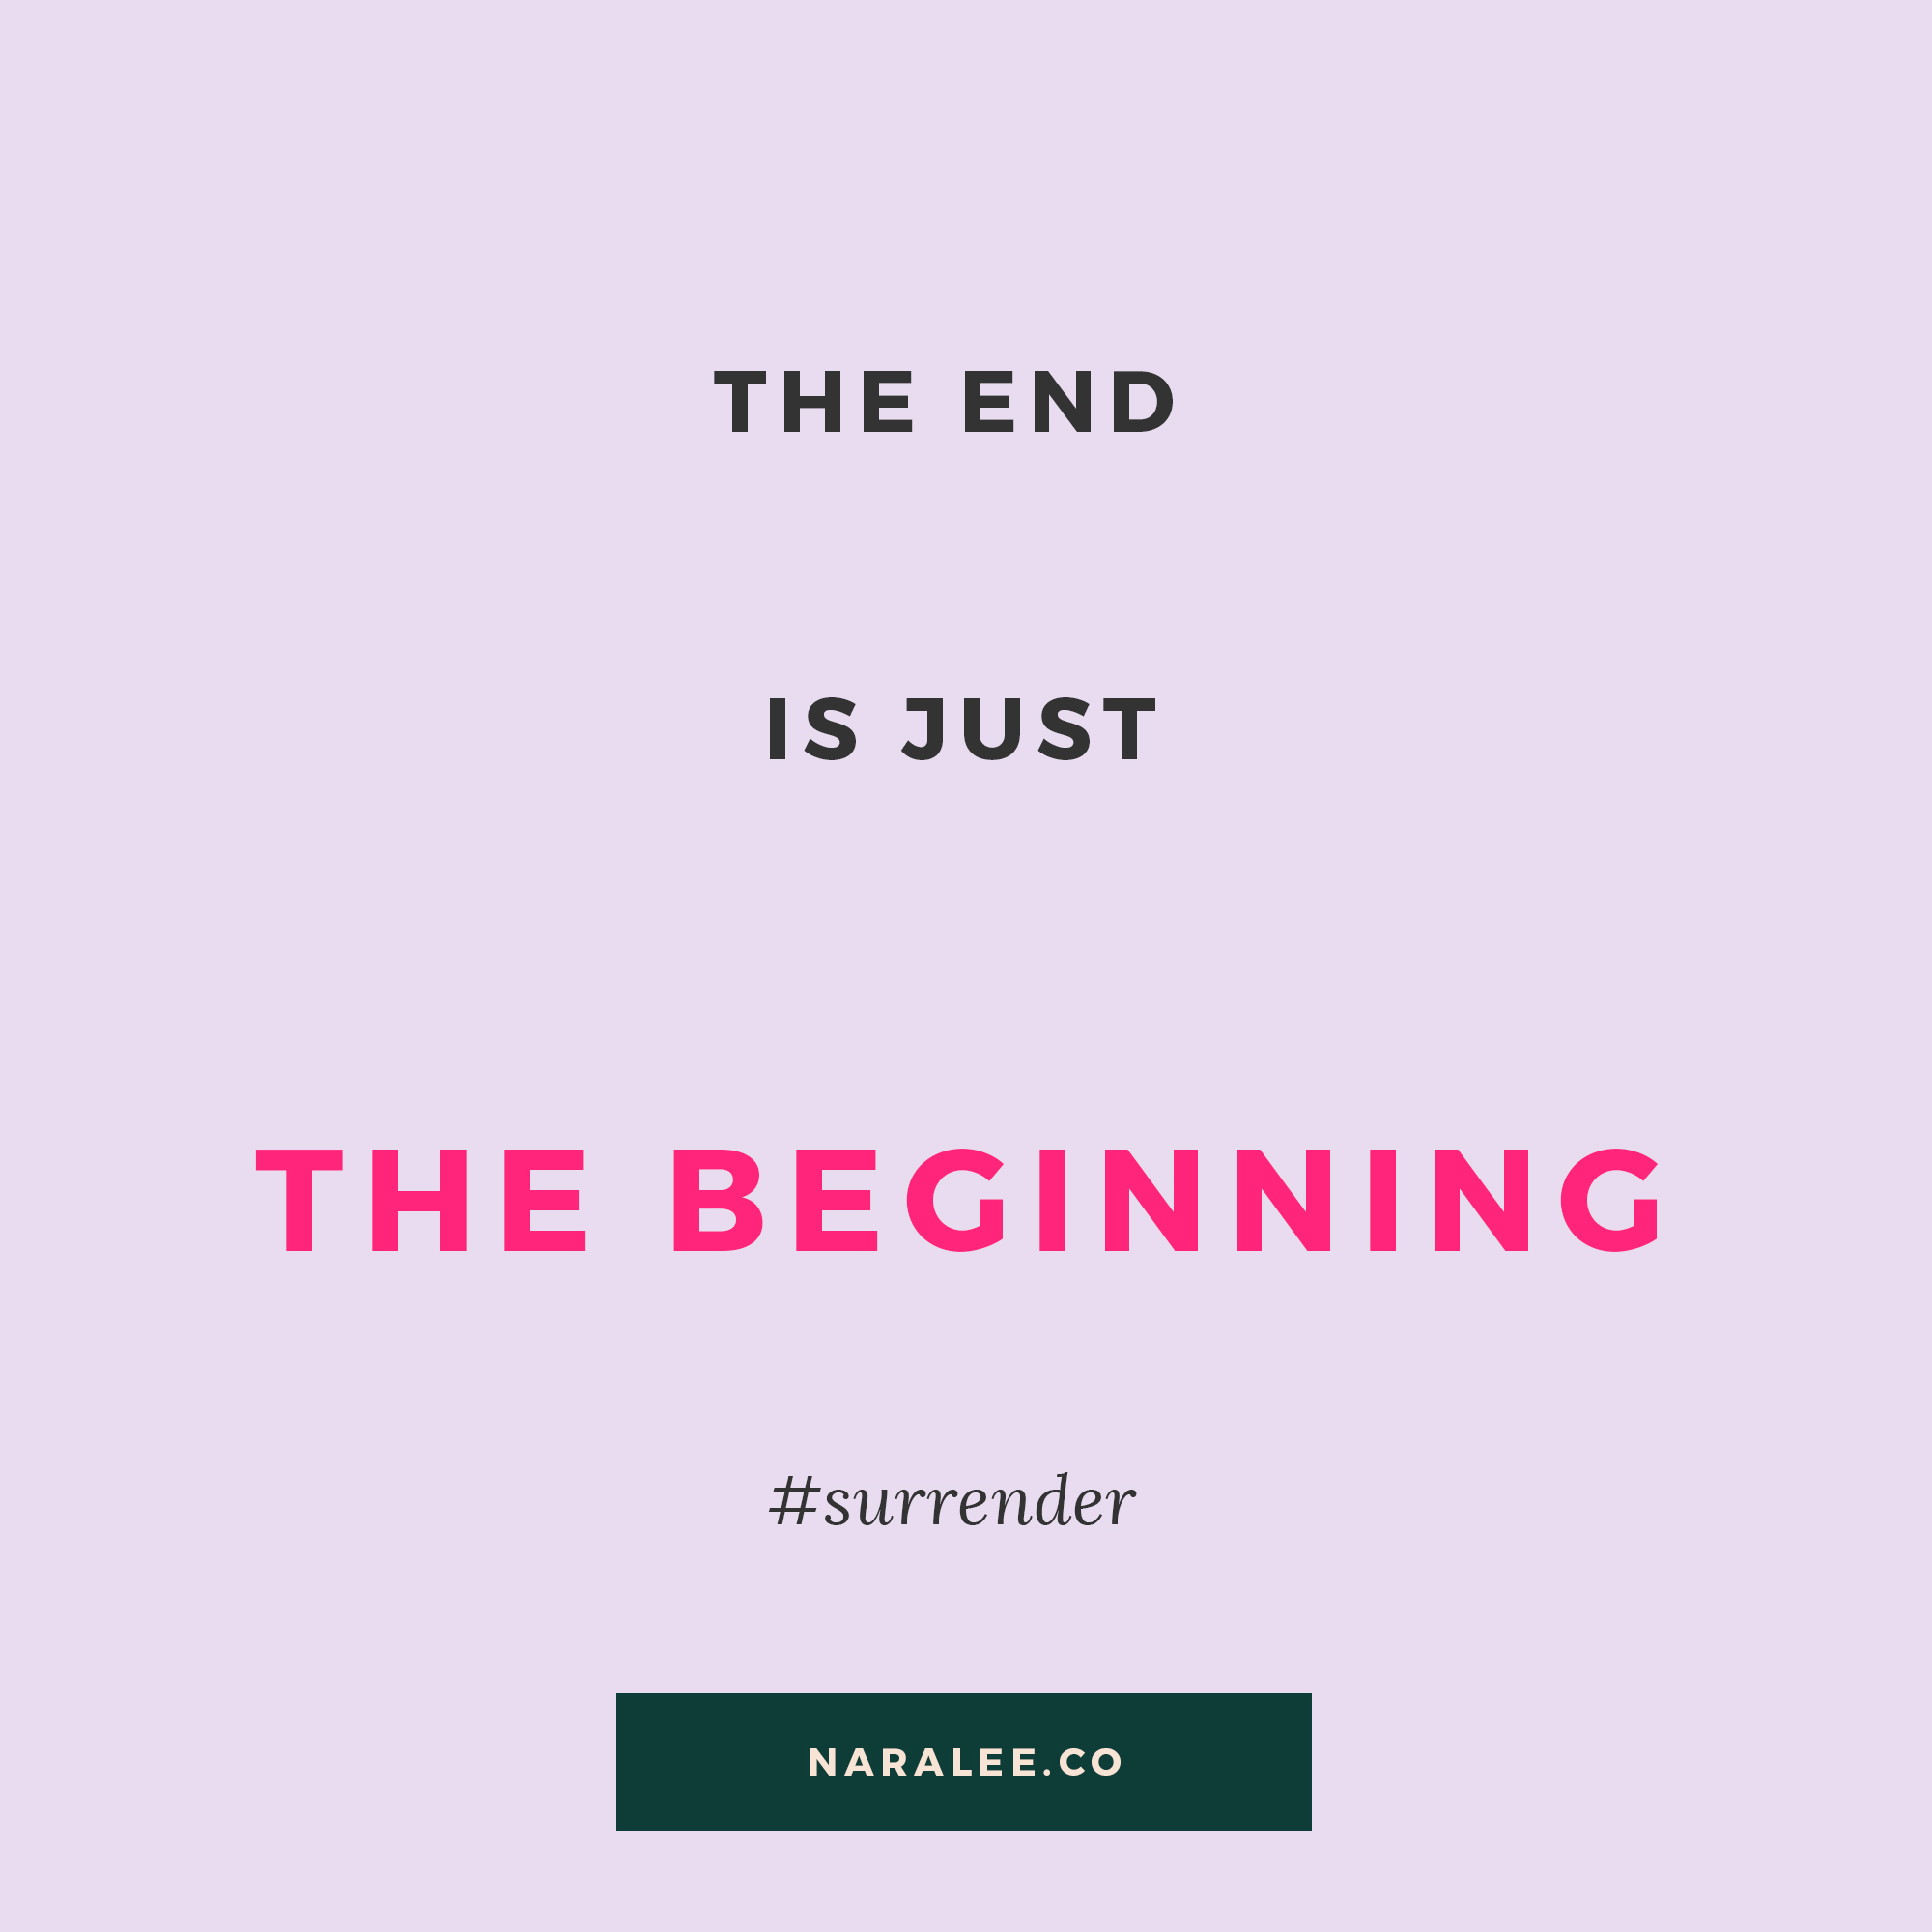 Quote-TheEndIJusttheBeginning-2.jpg